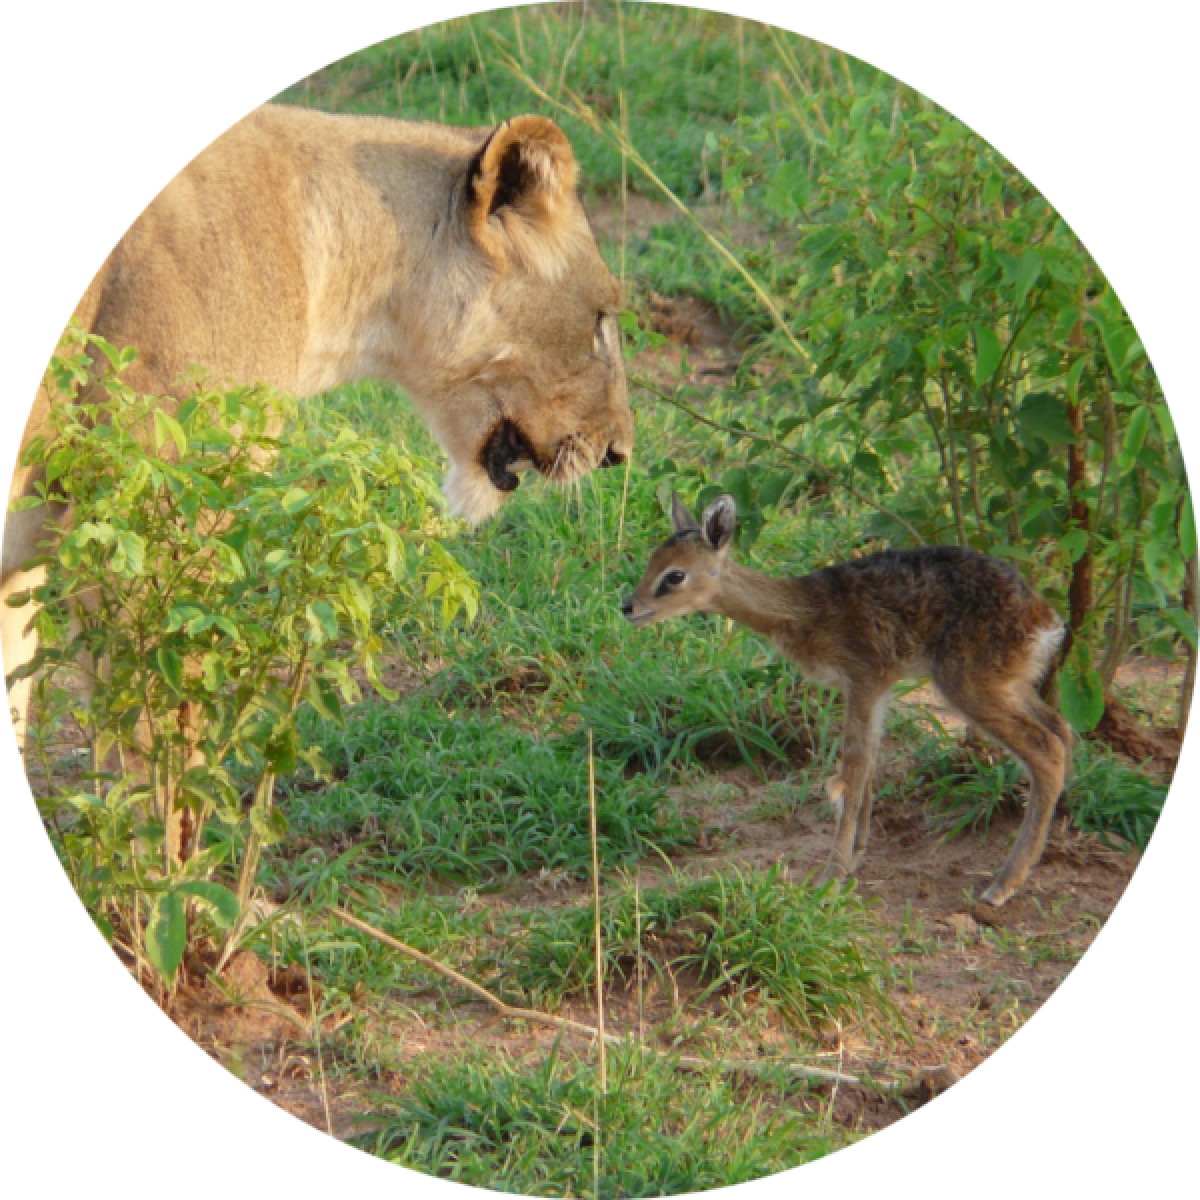 Spermatology as a tool in the conservation of wildlife.